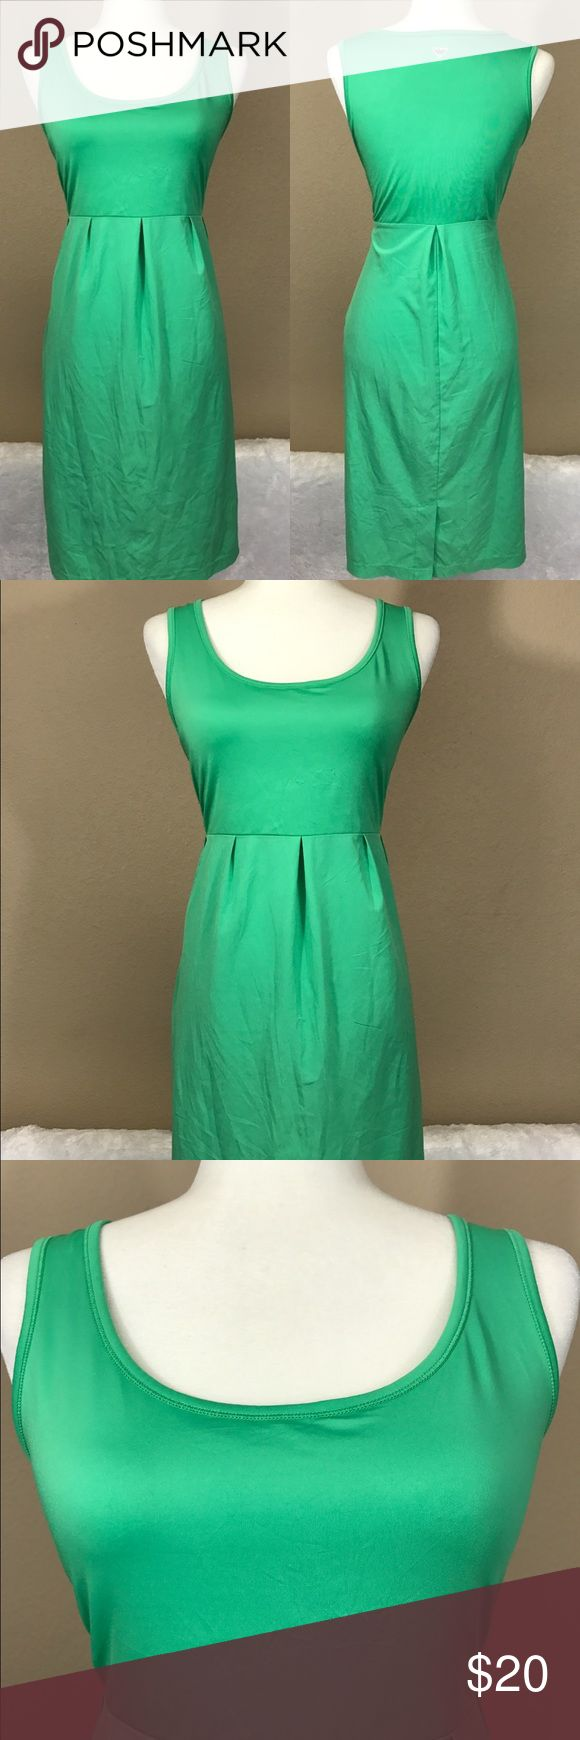 Columbia dress Great condition, has pockets! Columbia Dresses